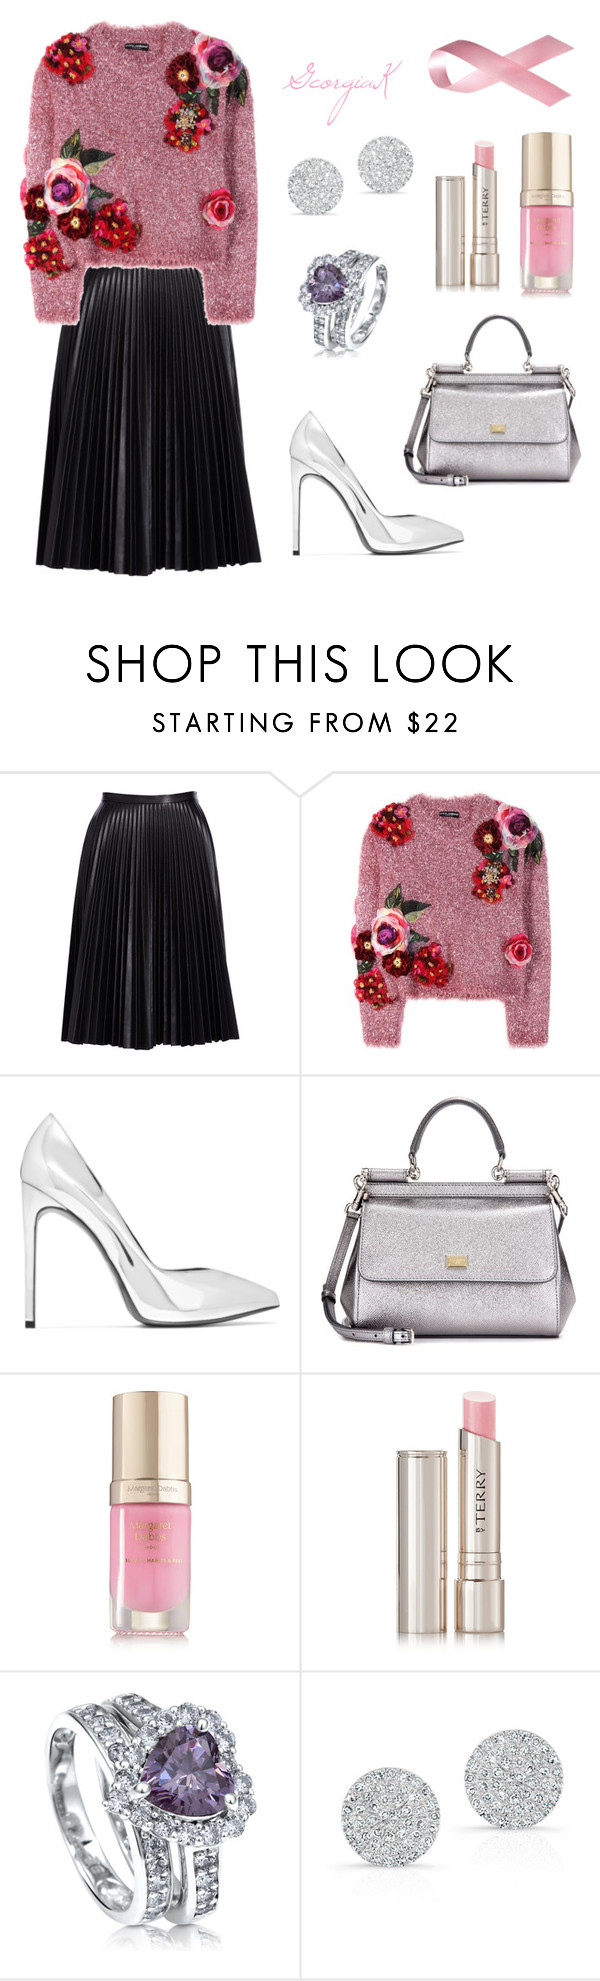 """""""GeorgiaK #92"""" by georgia-koumantzia ❤ liked on Polyvore featuring Cusp by Neiman Marcus, Dolce&Gabbana, Yves Saint Laurent, Margaret Dabbs, By Terry, BERRICLE and Anne Sisteron"""